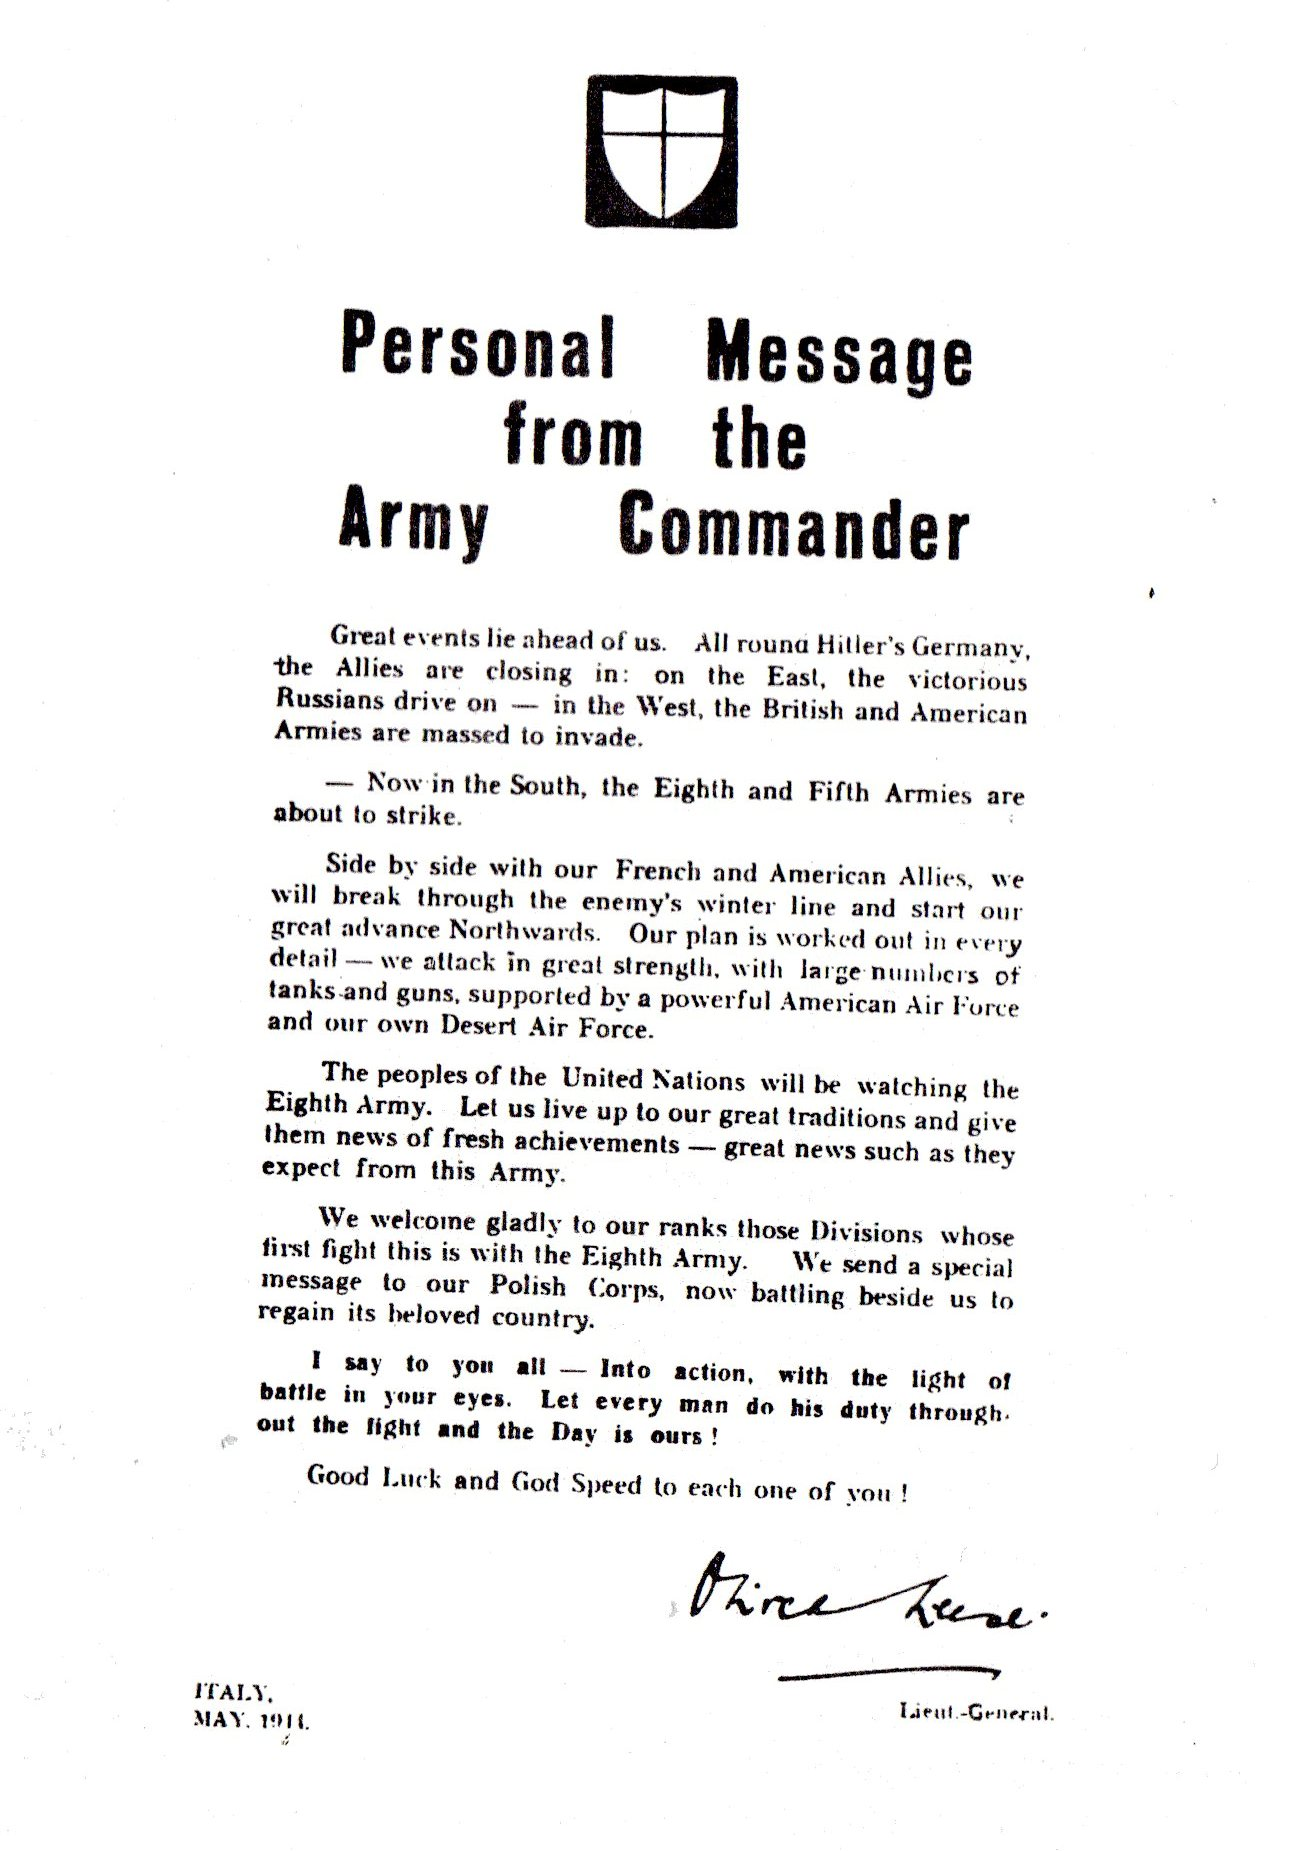 Message from the Army Commander